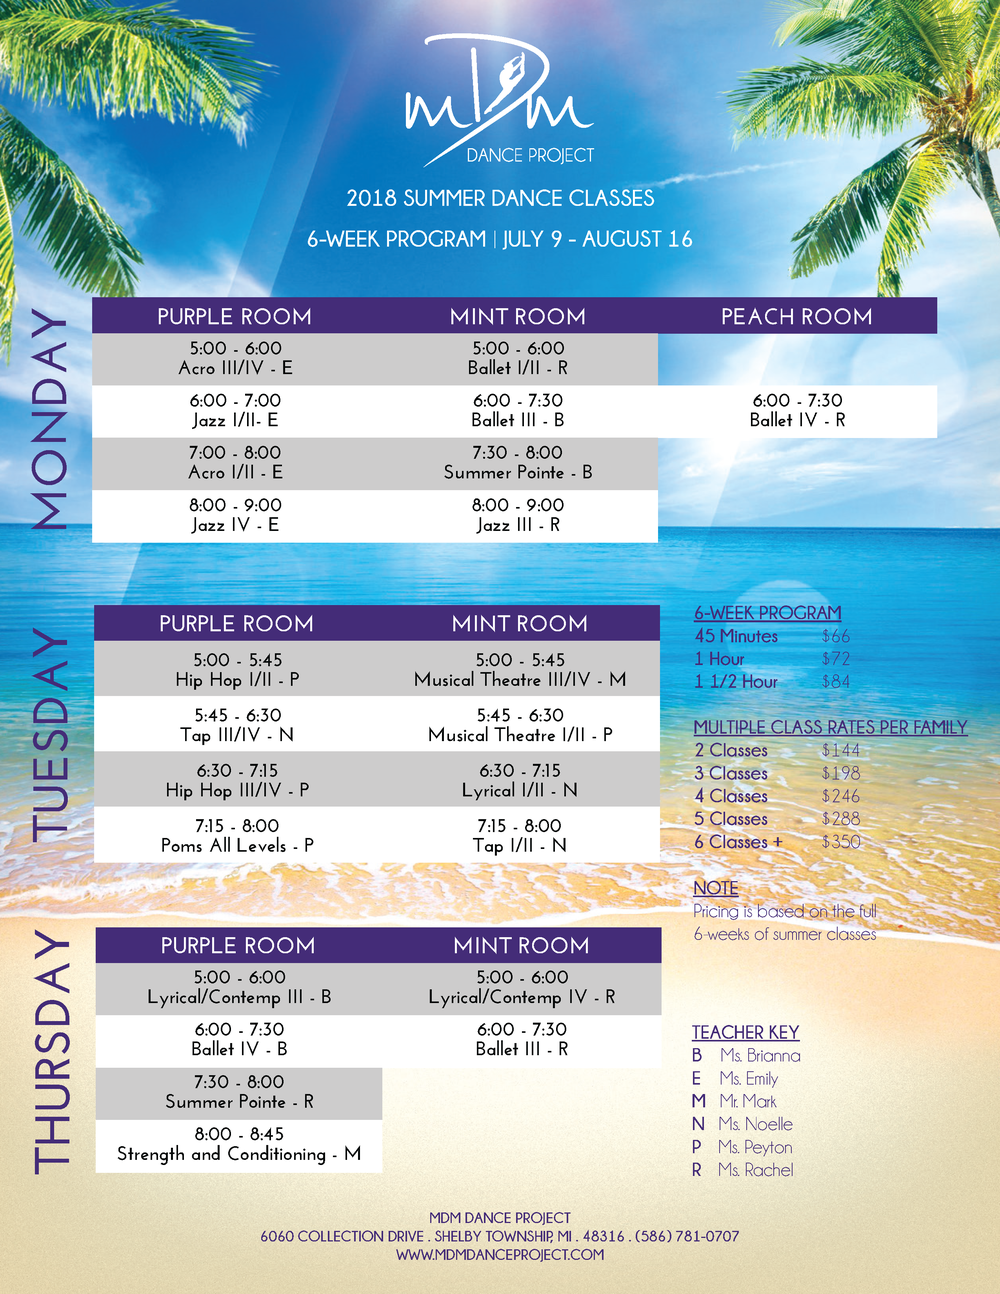 mdmdp-summer-classes-2018.png